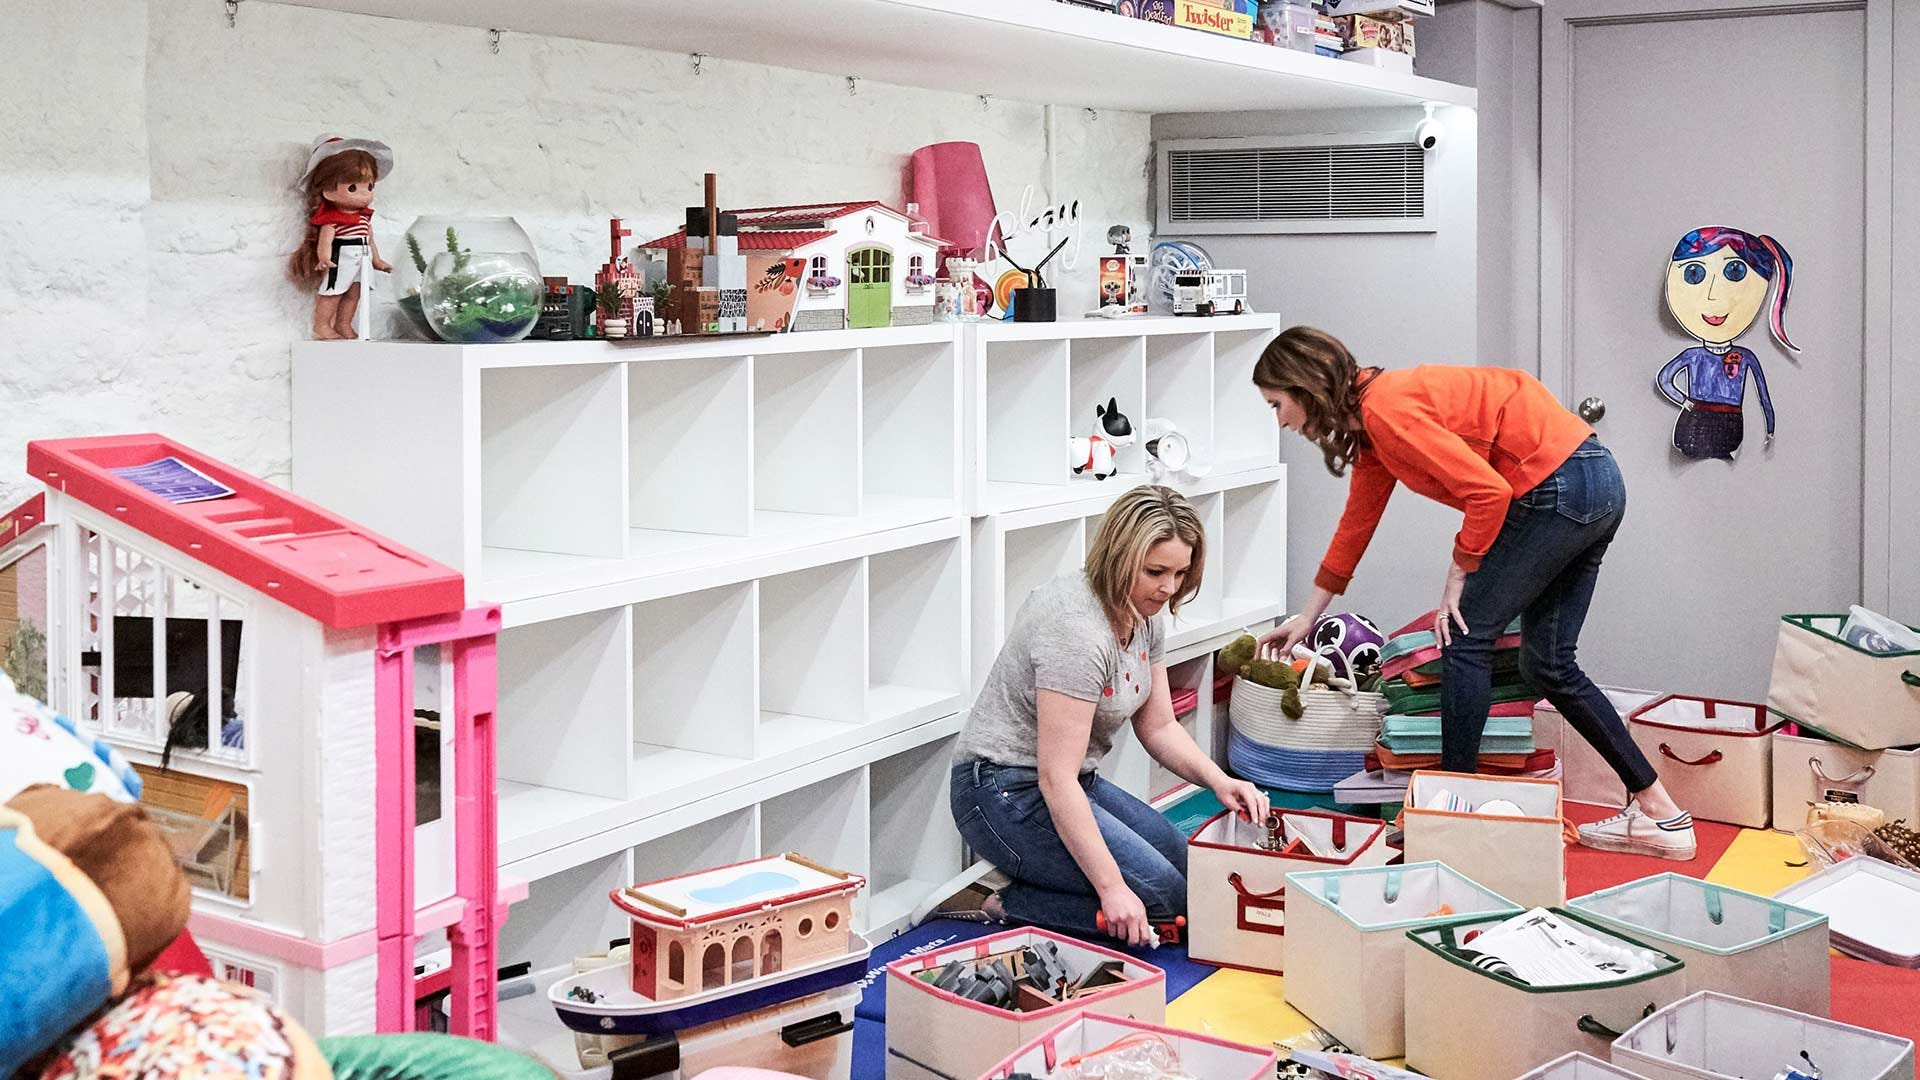 The Home Edit team cleaning up a room before organizing it.